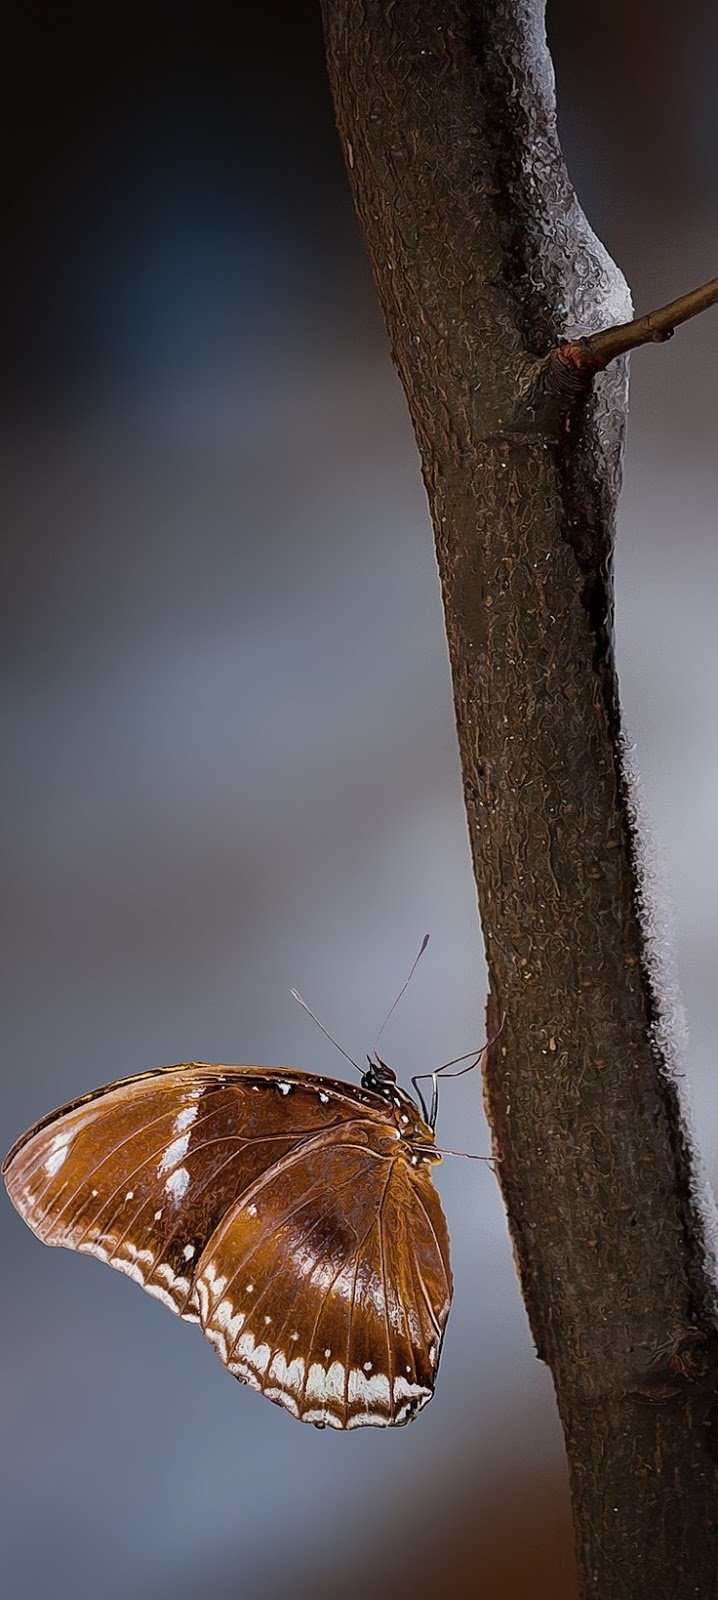 A brown butterfly climbing a branch.